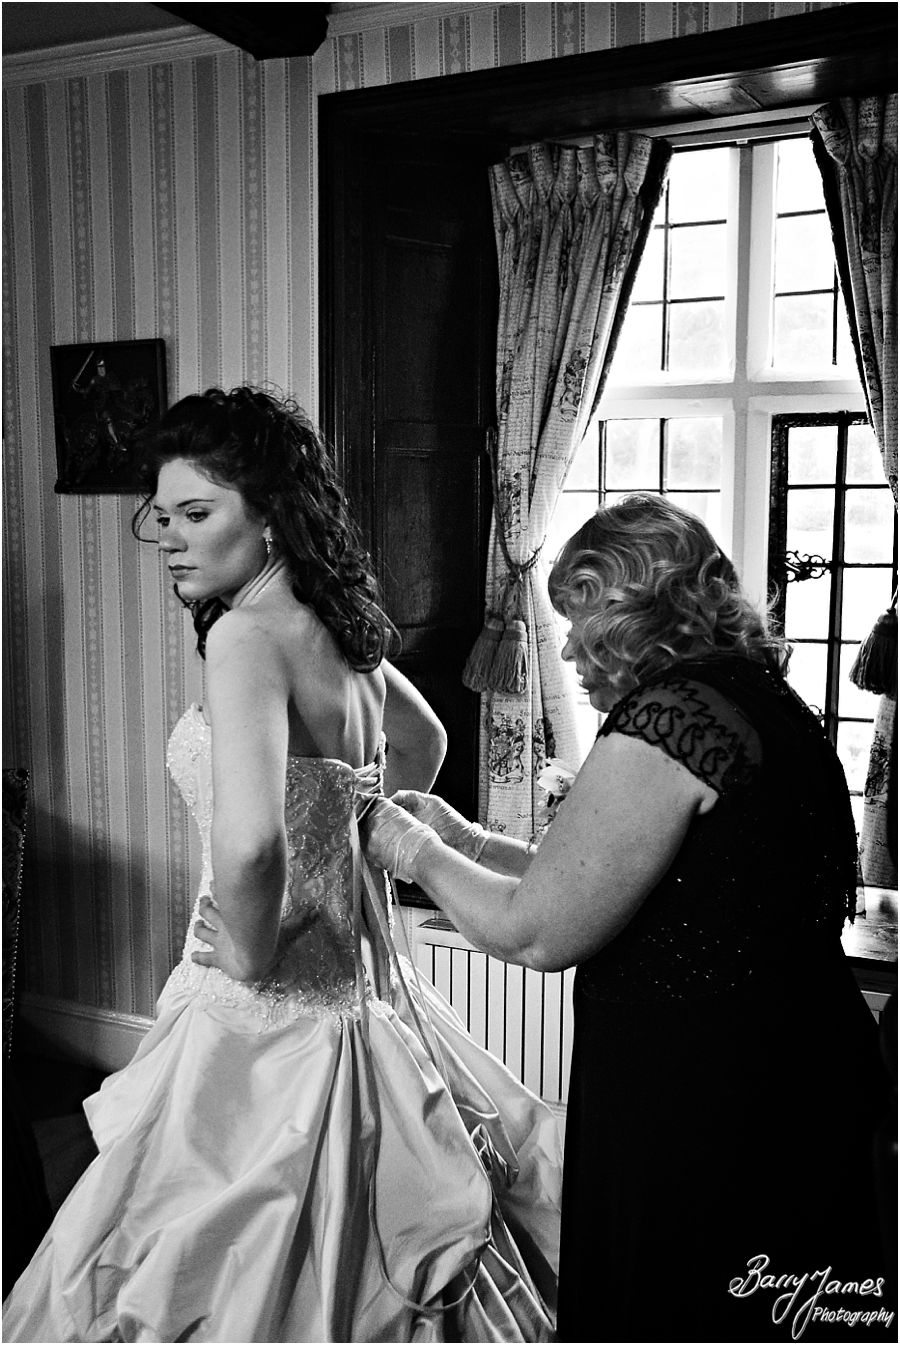 Creative candid photos of morning preparations at New Hall in Walmley by Award Winning Wedding Photographer Barry James